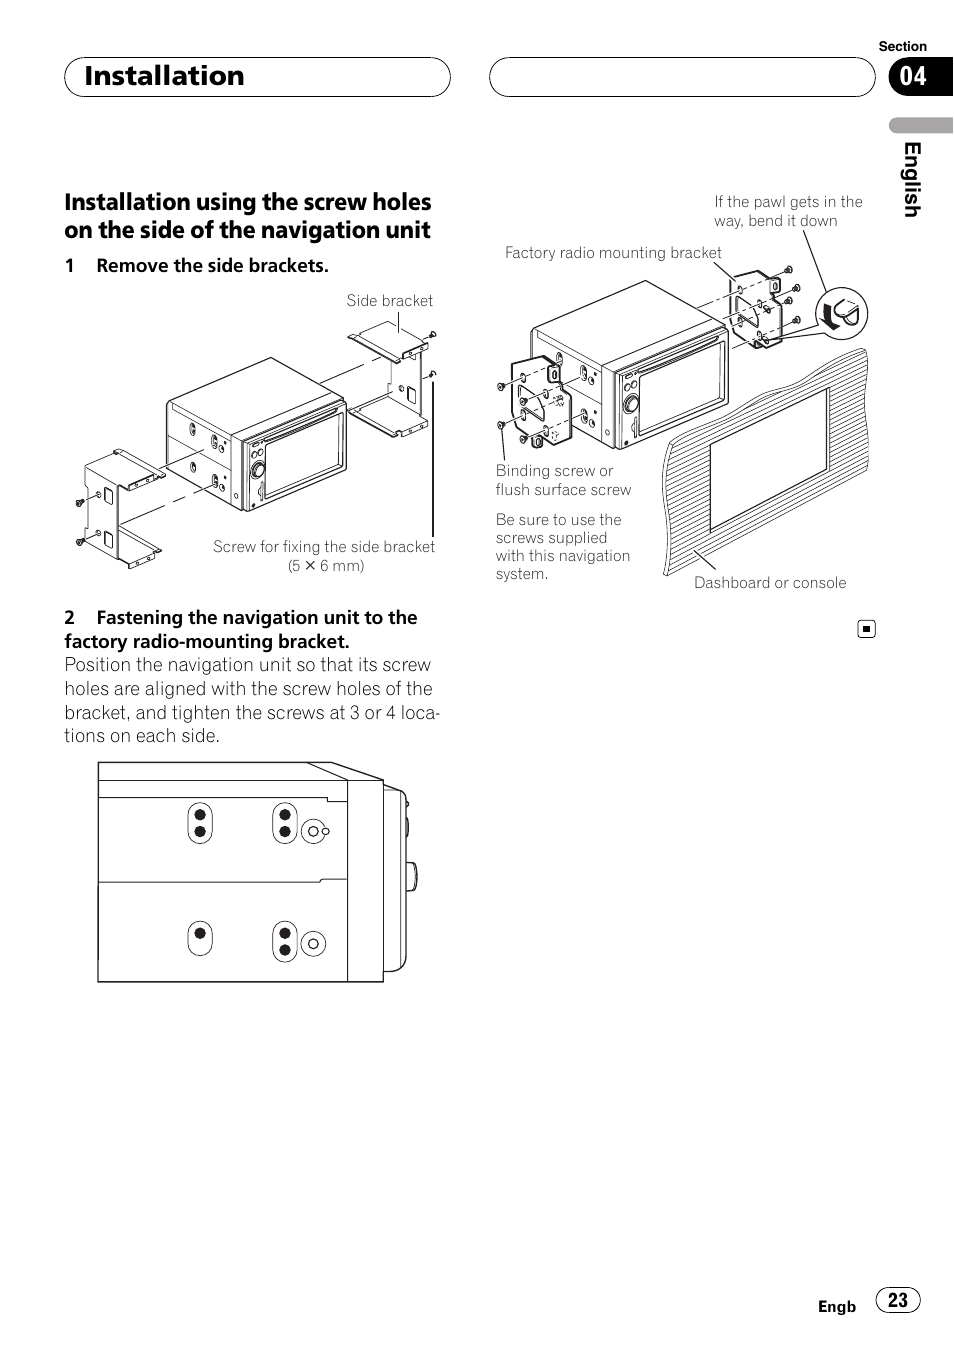 medium resolution of installation using the screw holes on the side of the navigation unit installation